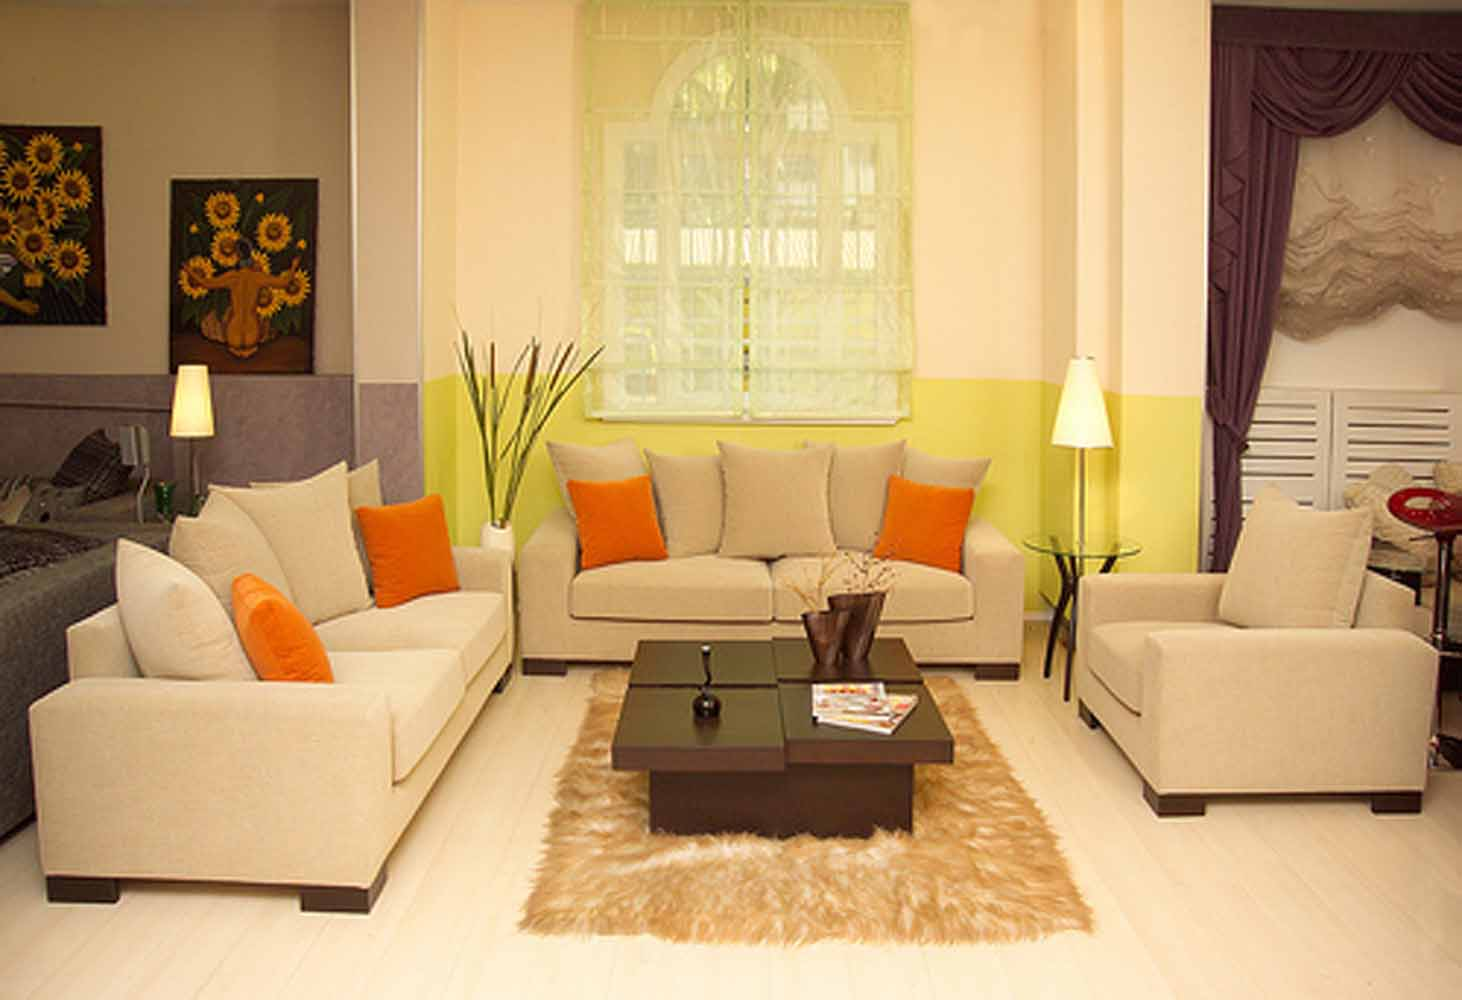 Off White Living Room Furniture off white living room furniture – modern house